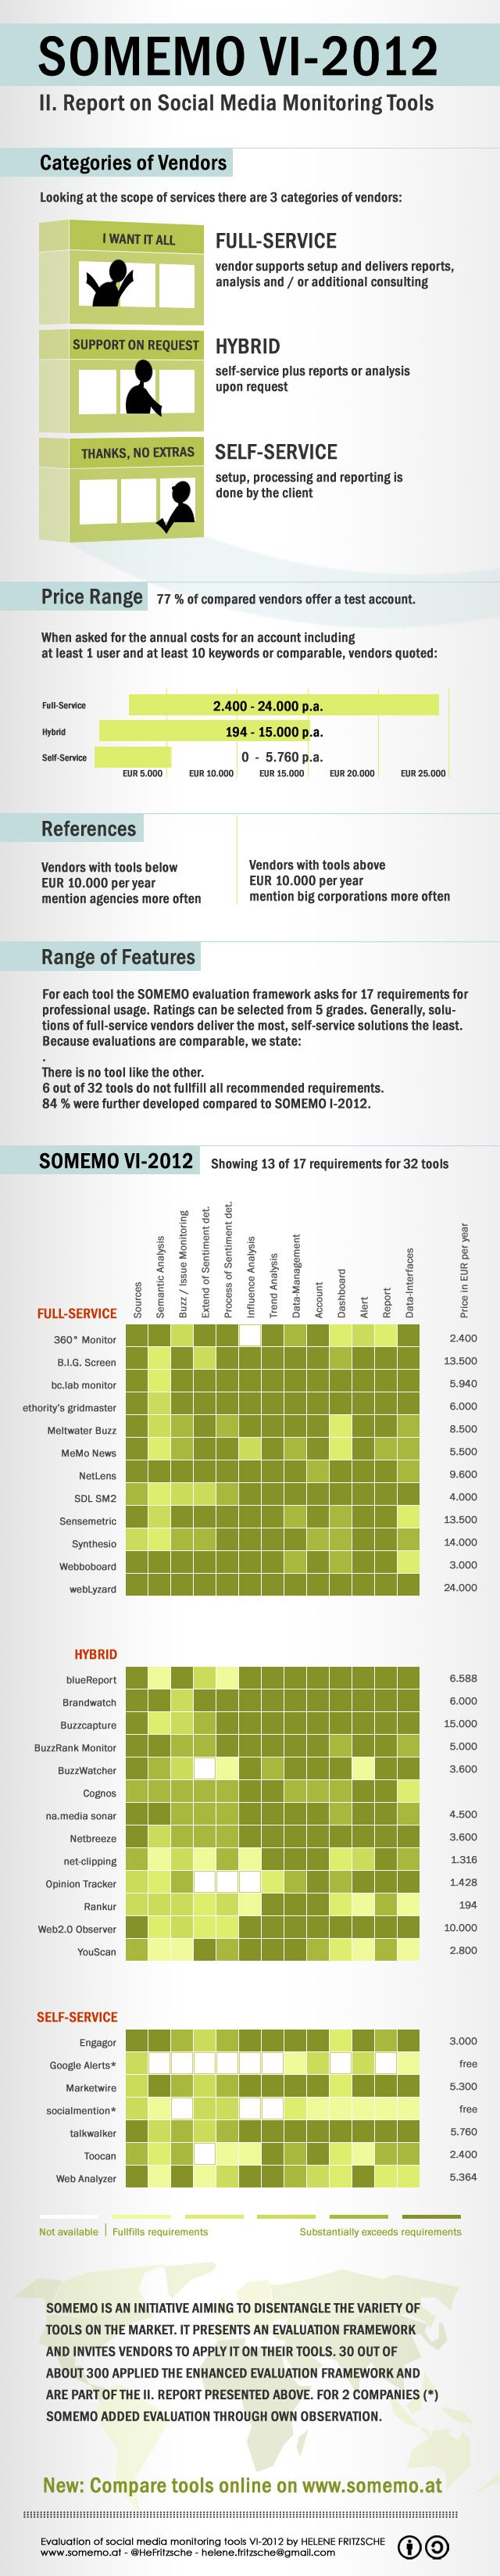 SOMEMO VI-2012 Social Media Monitoring Tools Report - comparing 32 solutions - new tools added constantly http://www.somemo.at/?p=1037